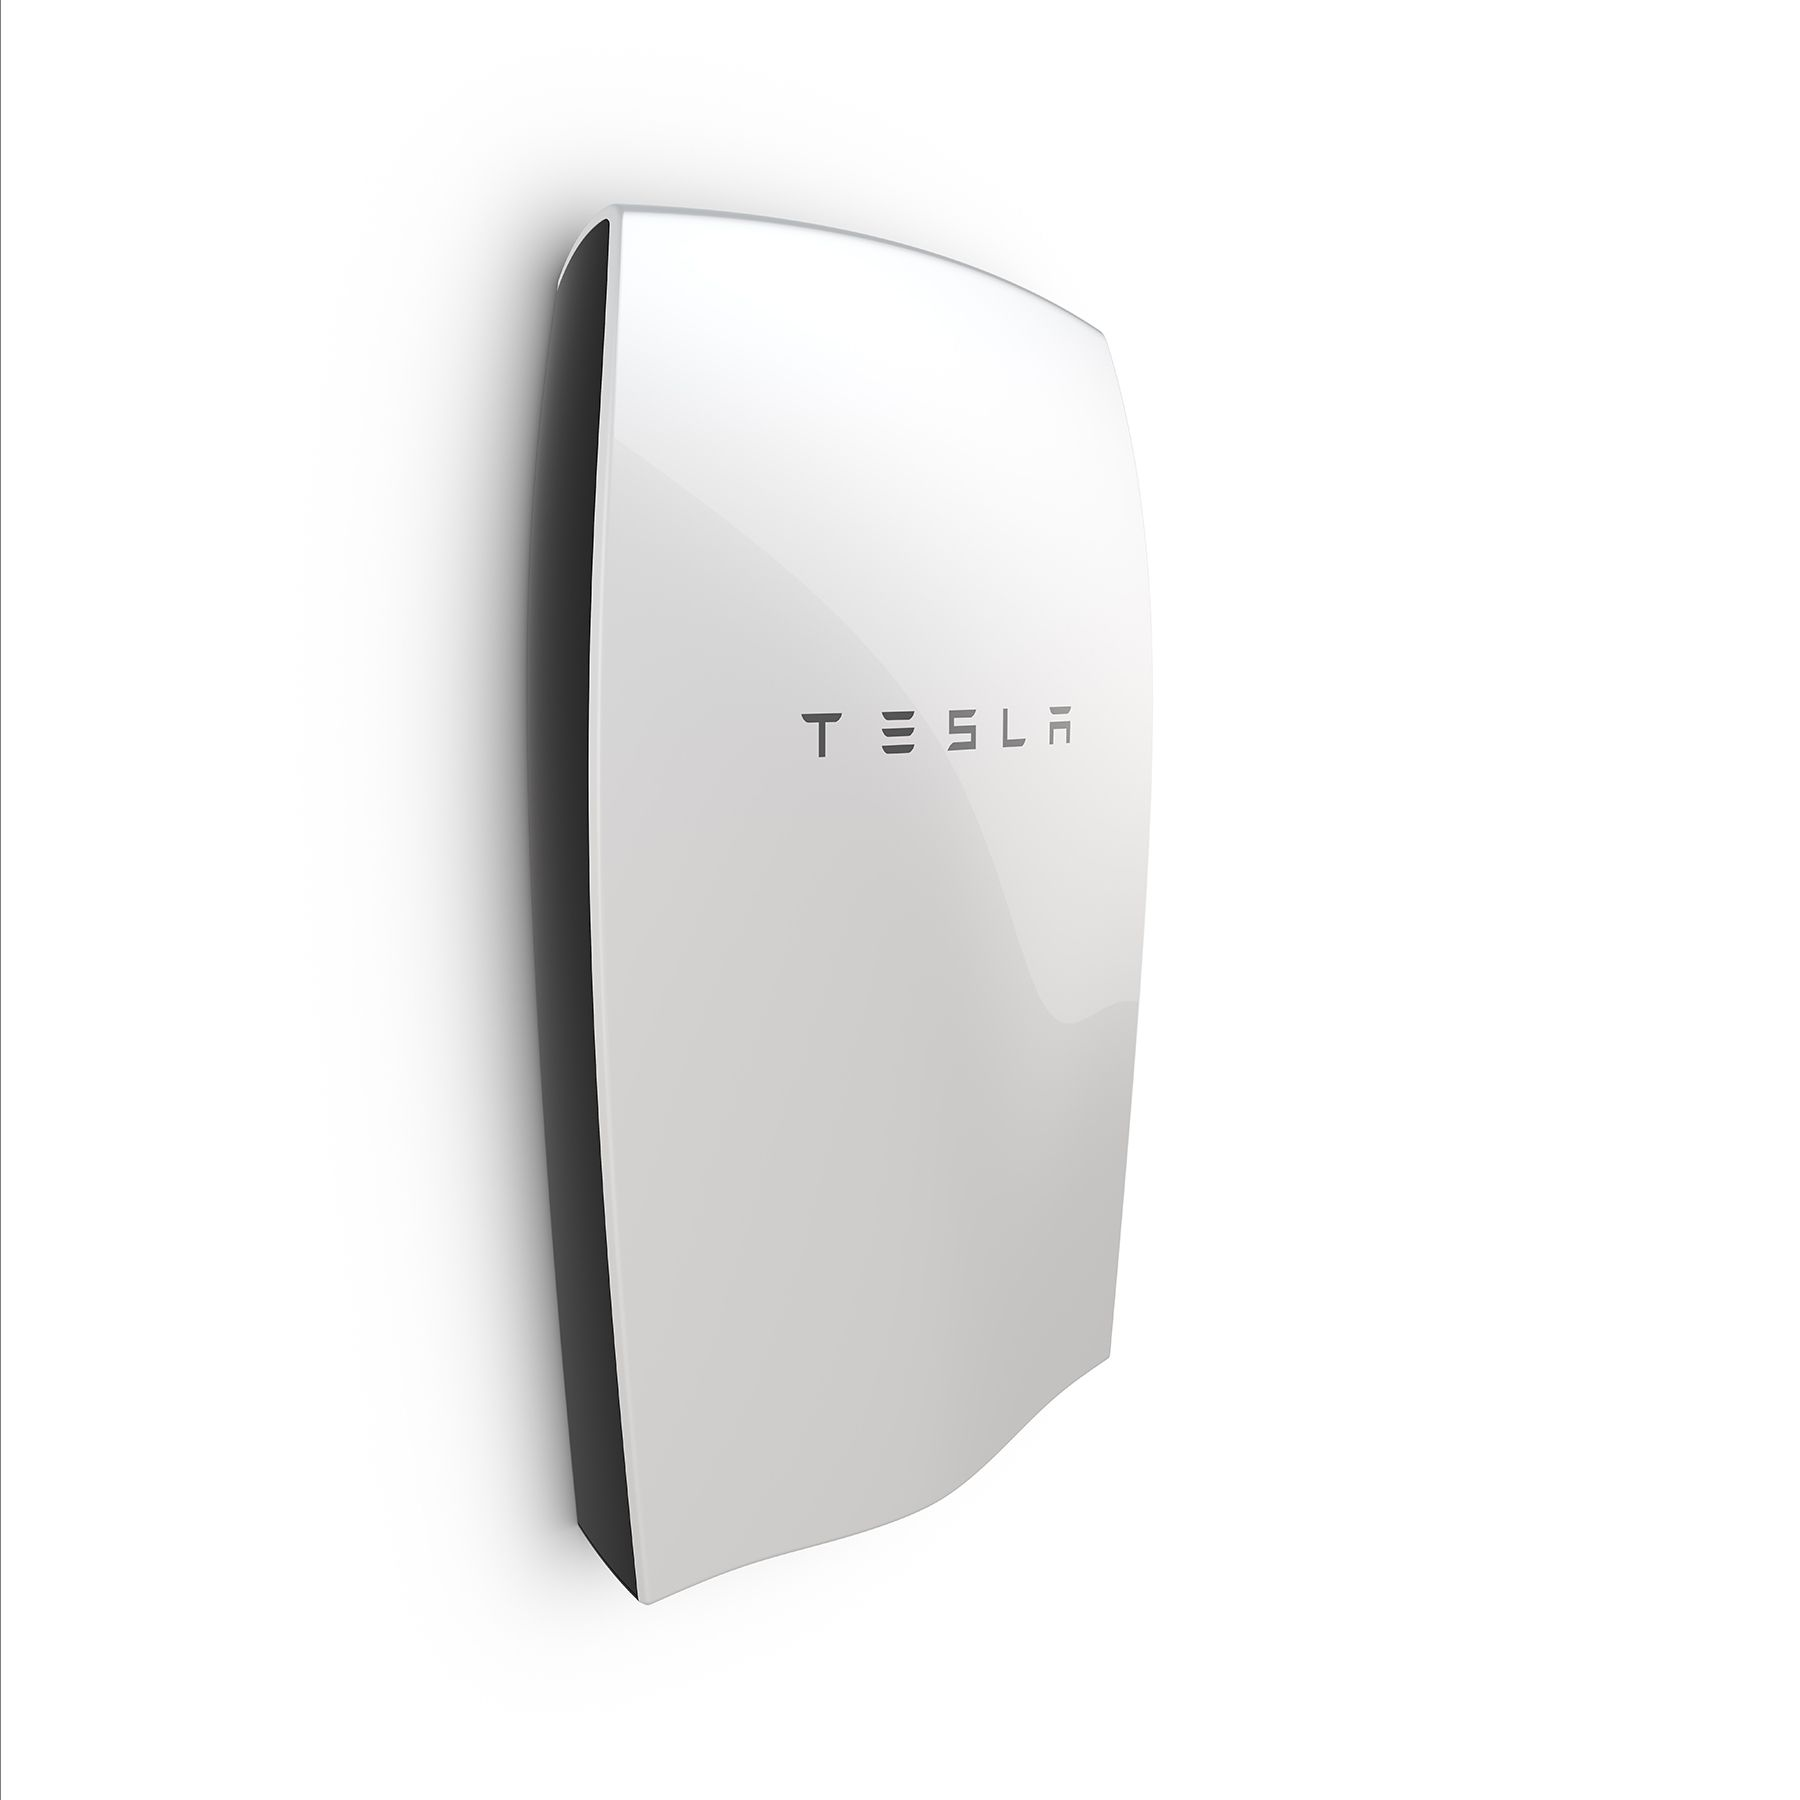 Tesla's Big Announcement Is PowerWall: A Battery For Your Home